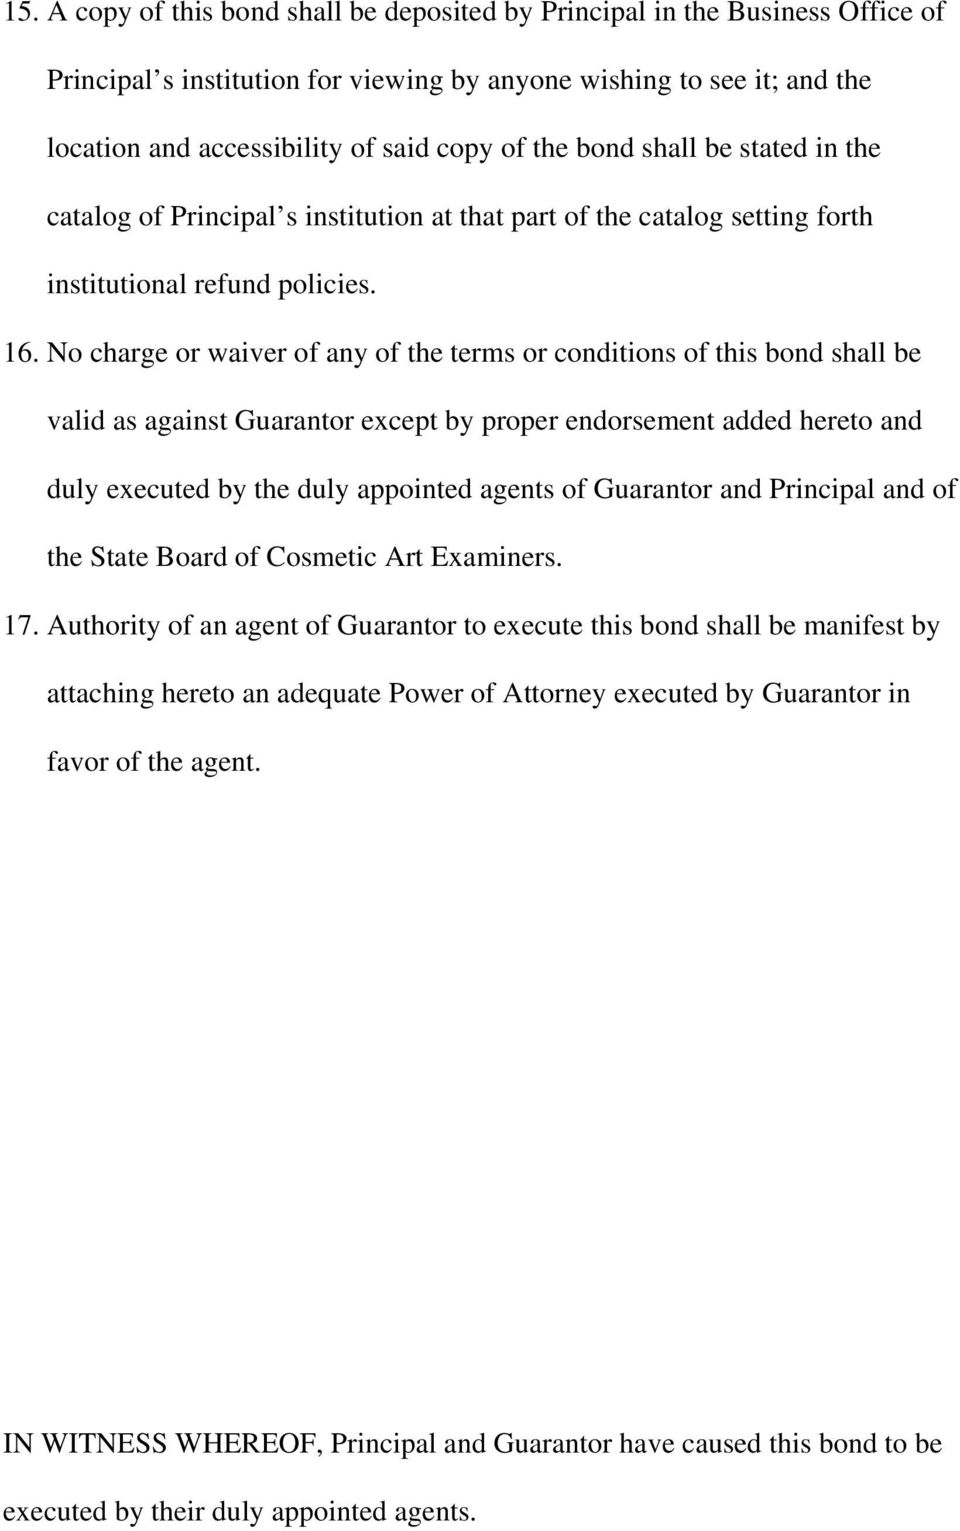 No charge or waiver of any of the terms or conditions of this bond shall be valid as against Guarantor except by proper endorsement added hereto and duly executed by the duly appointed agents of